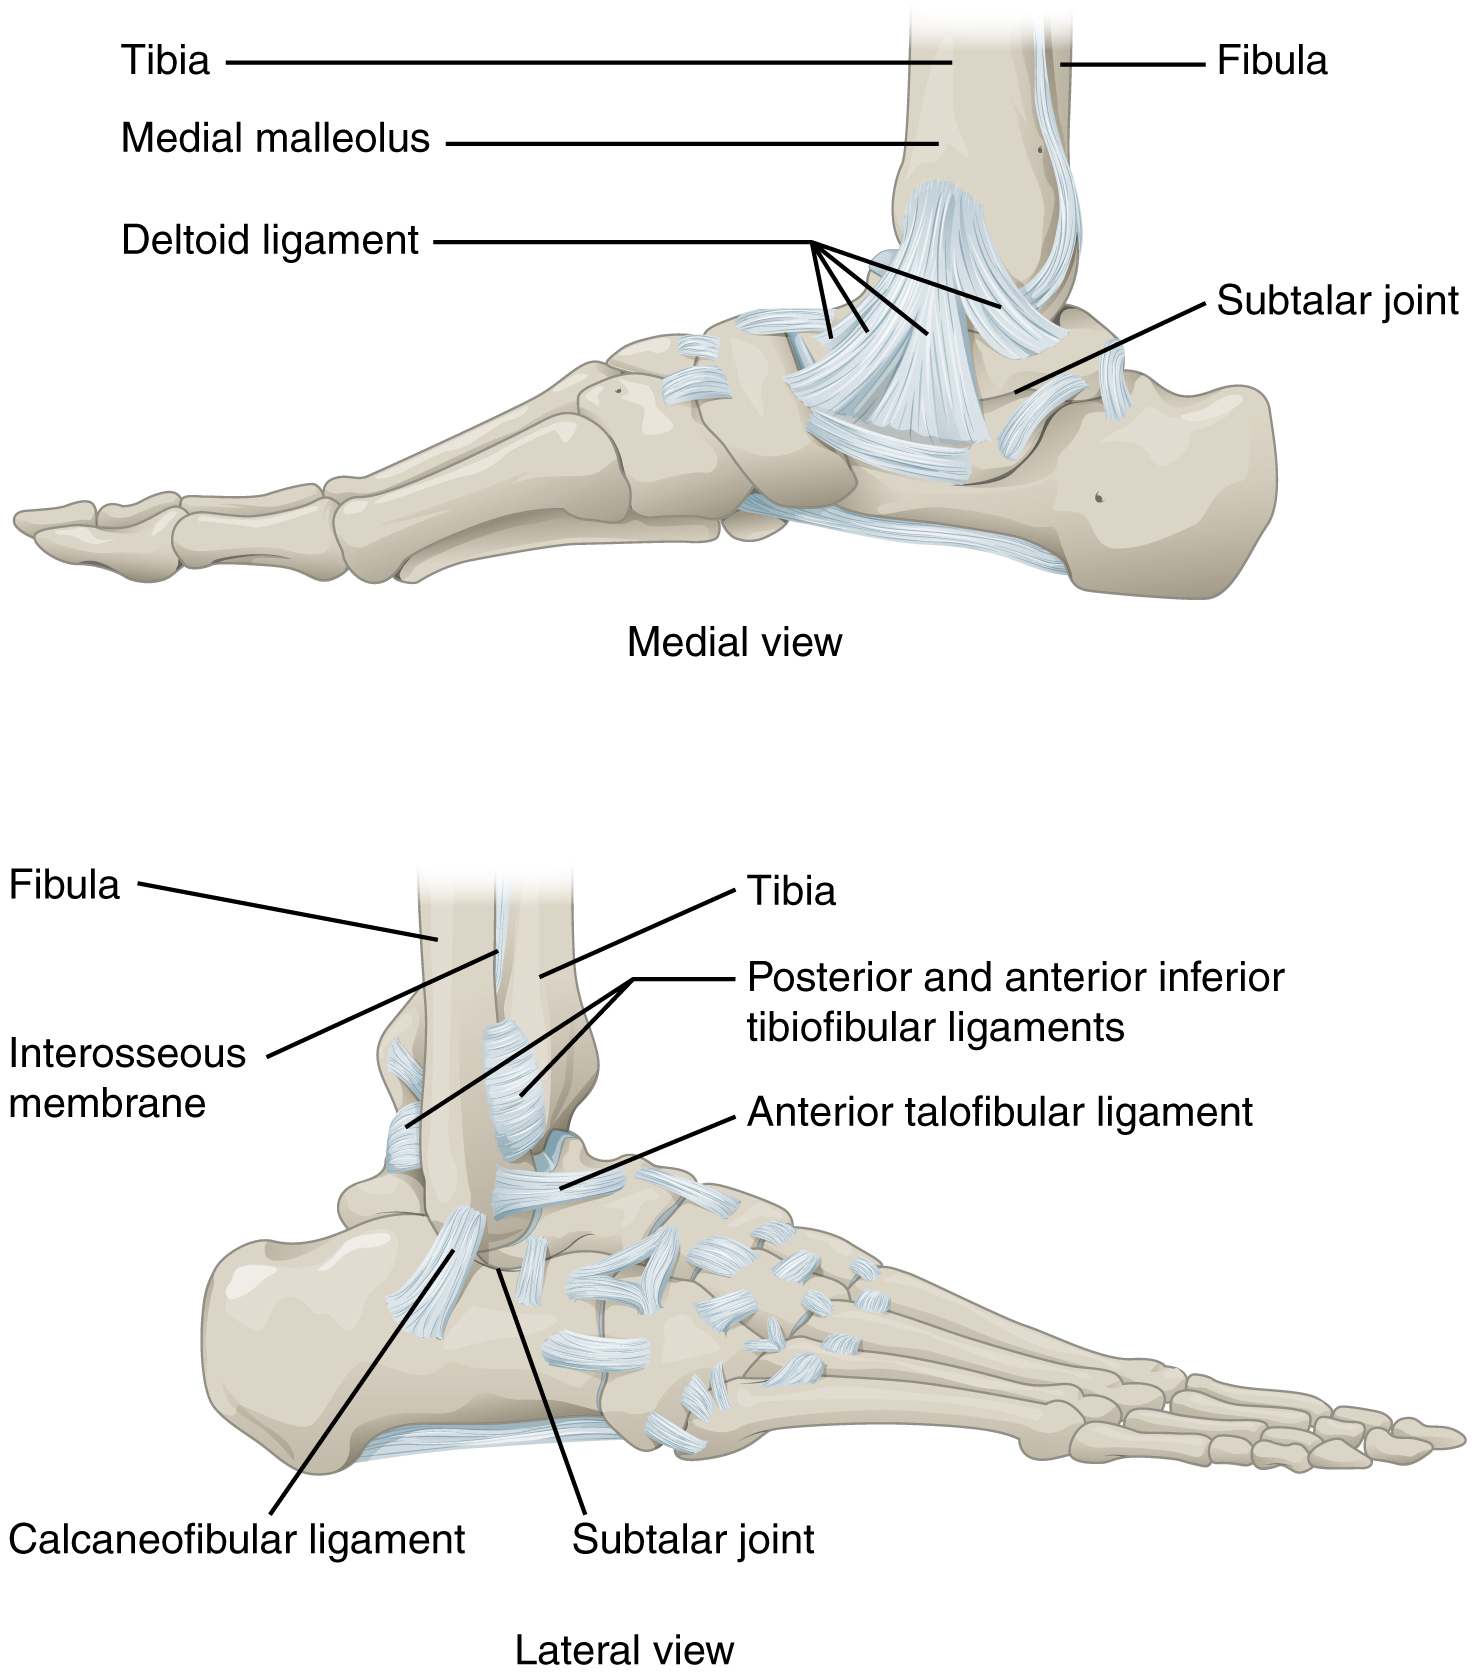 This figure shows the structure of the ankle and feet joints. The top panel shows the medial view of the ankle joint, and the bottom panel shows the lateral view.